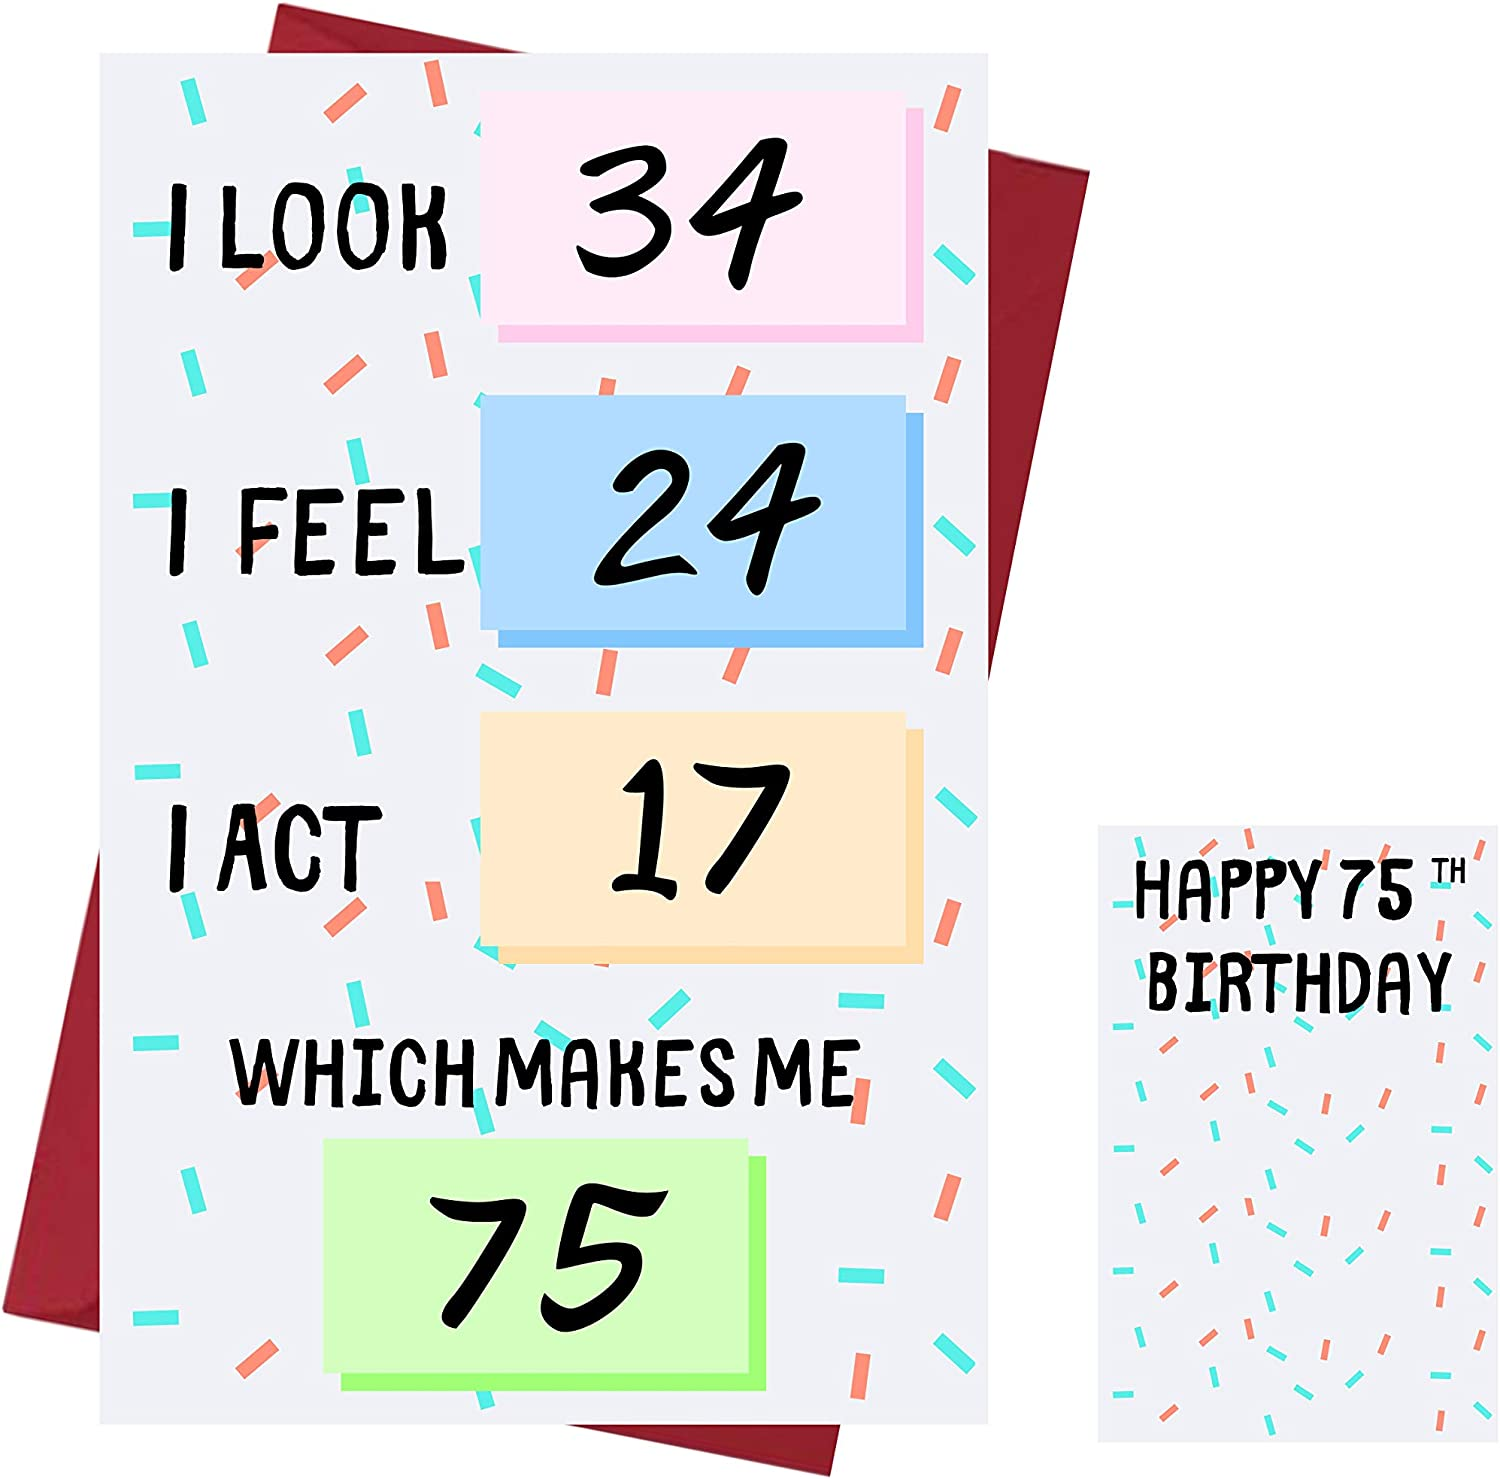 Amazon Com Funny 75th Birthday Cards For Women Or Men For Friends Family Lover Etc Funny Birthday Cards 75 Years Old Perfect Funny Birthday Cards 75th Anniversary With Envelope Office Products